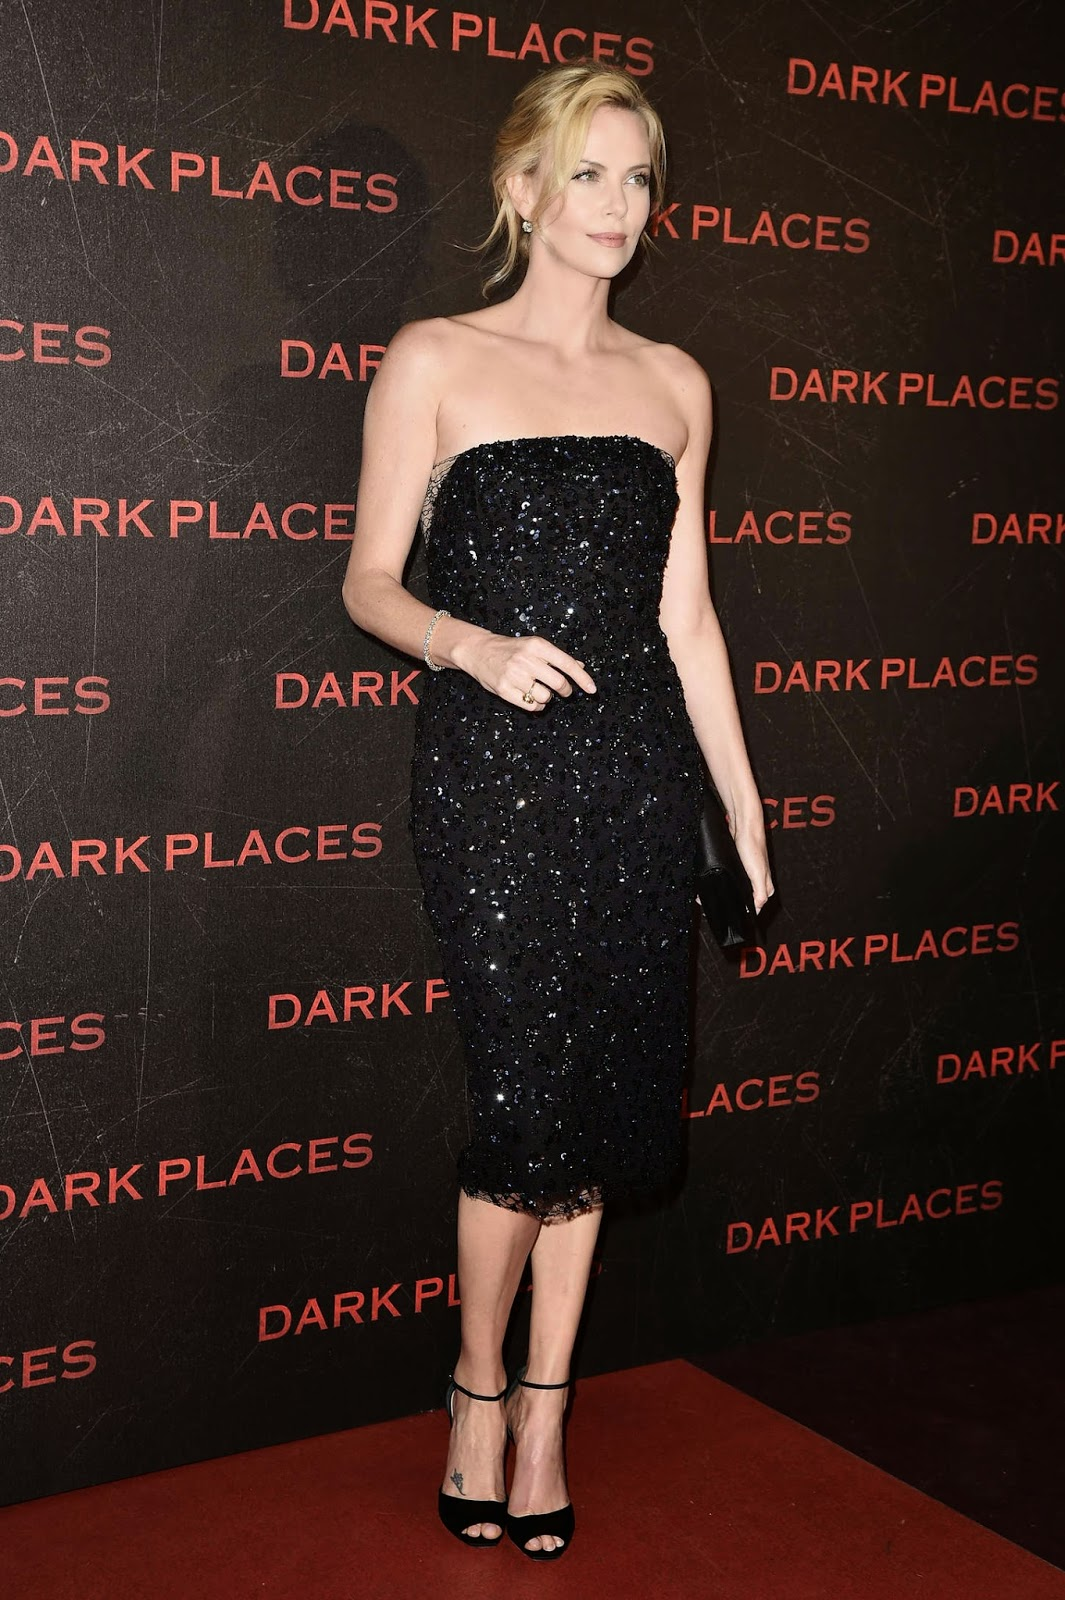 Charlize Theron in a sequinned strapless dress at the 'Dark Places' premiere in Paris